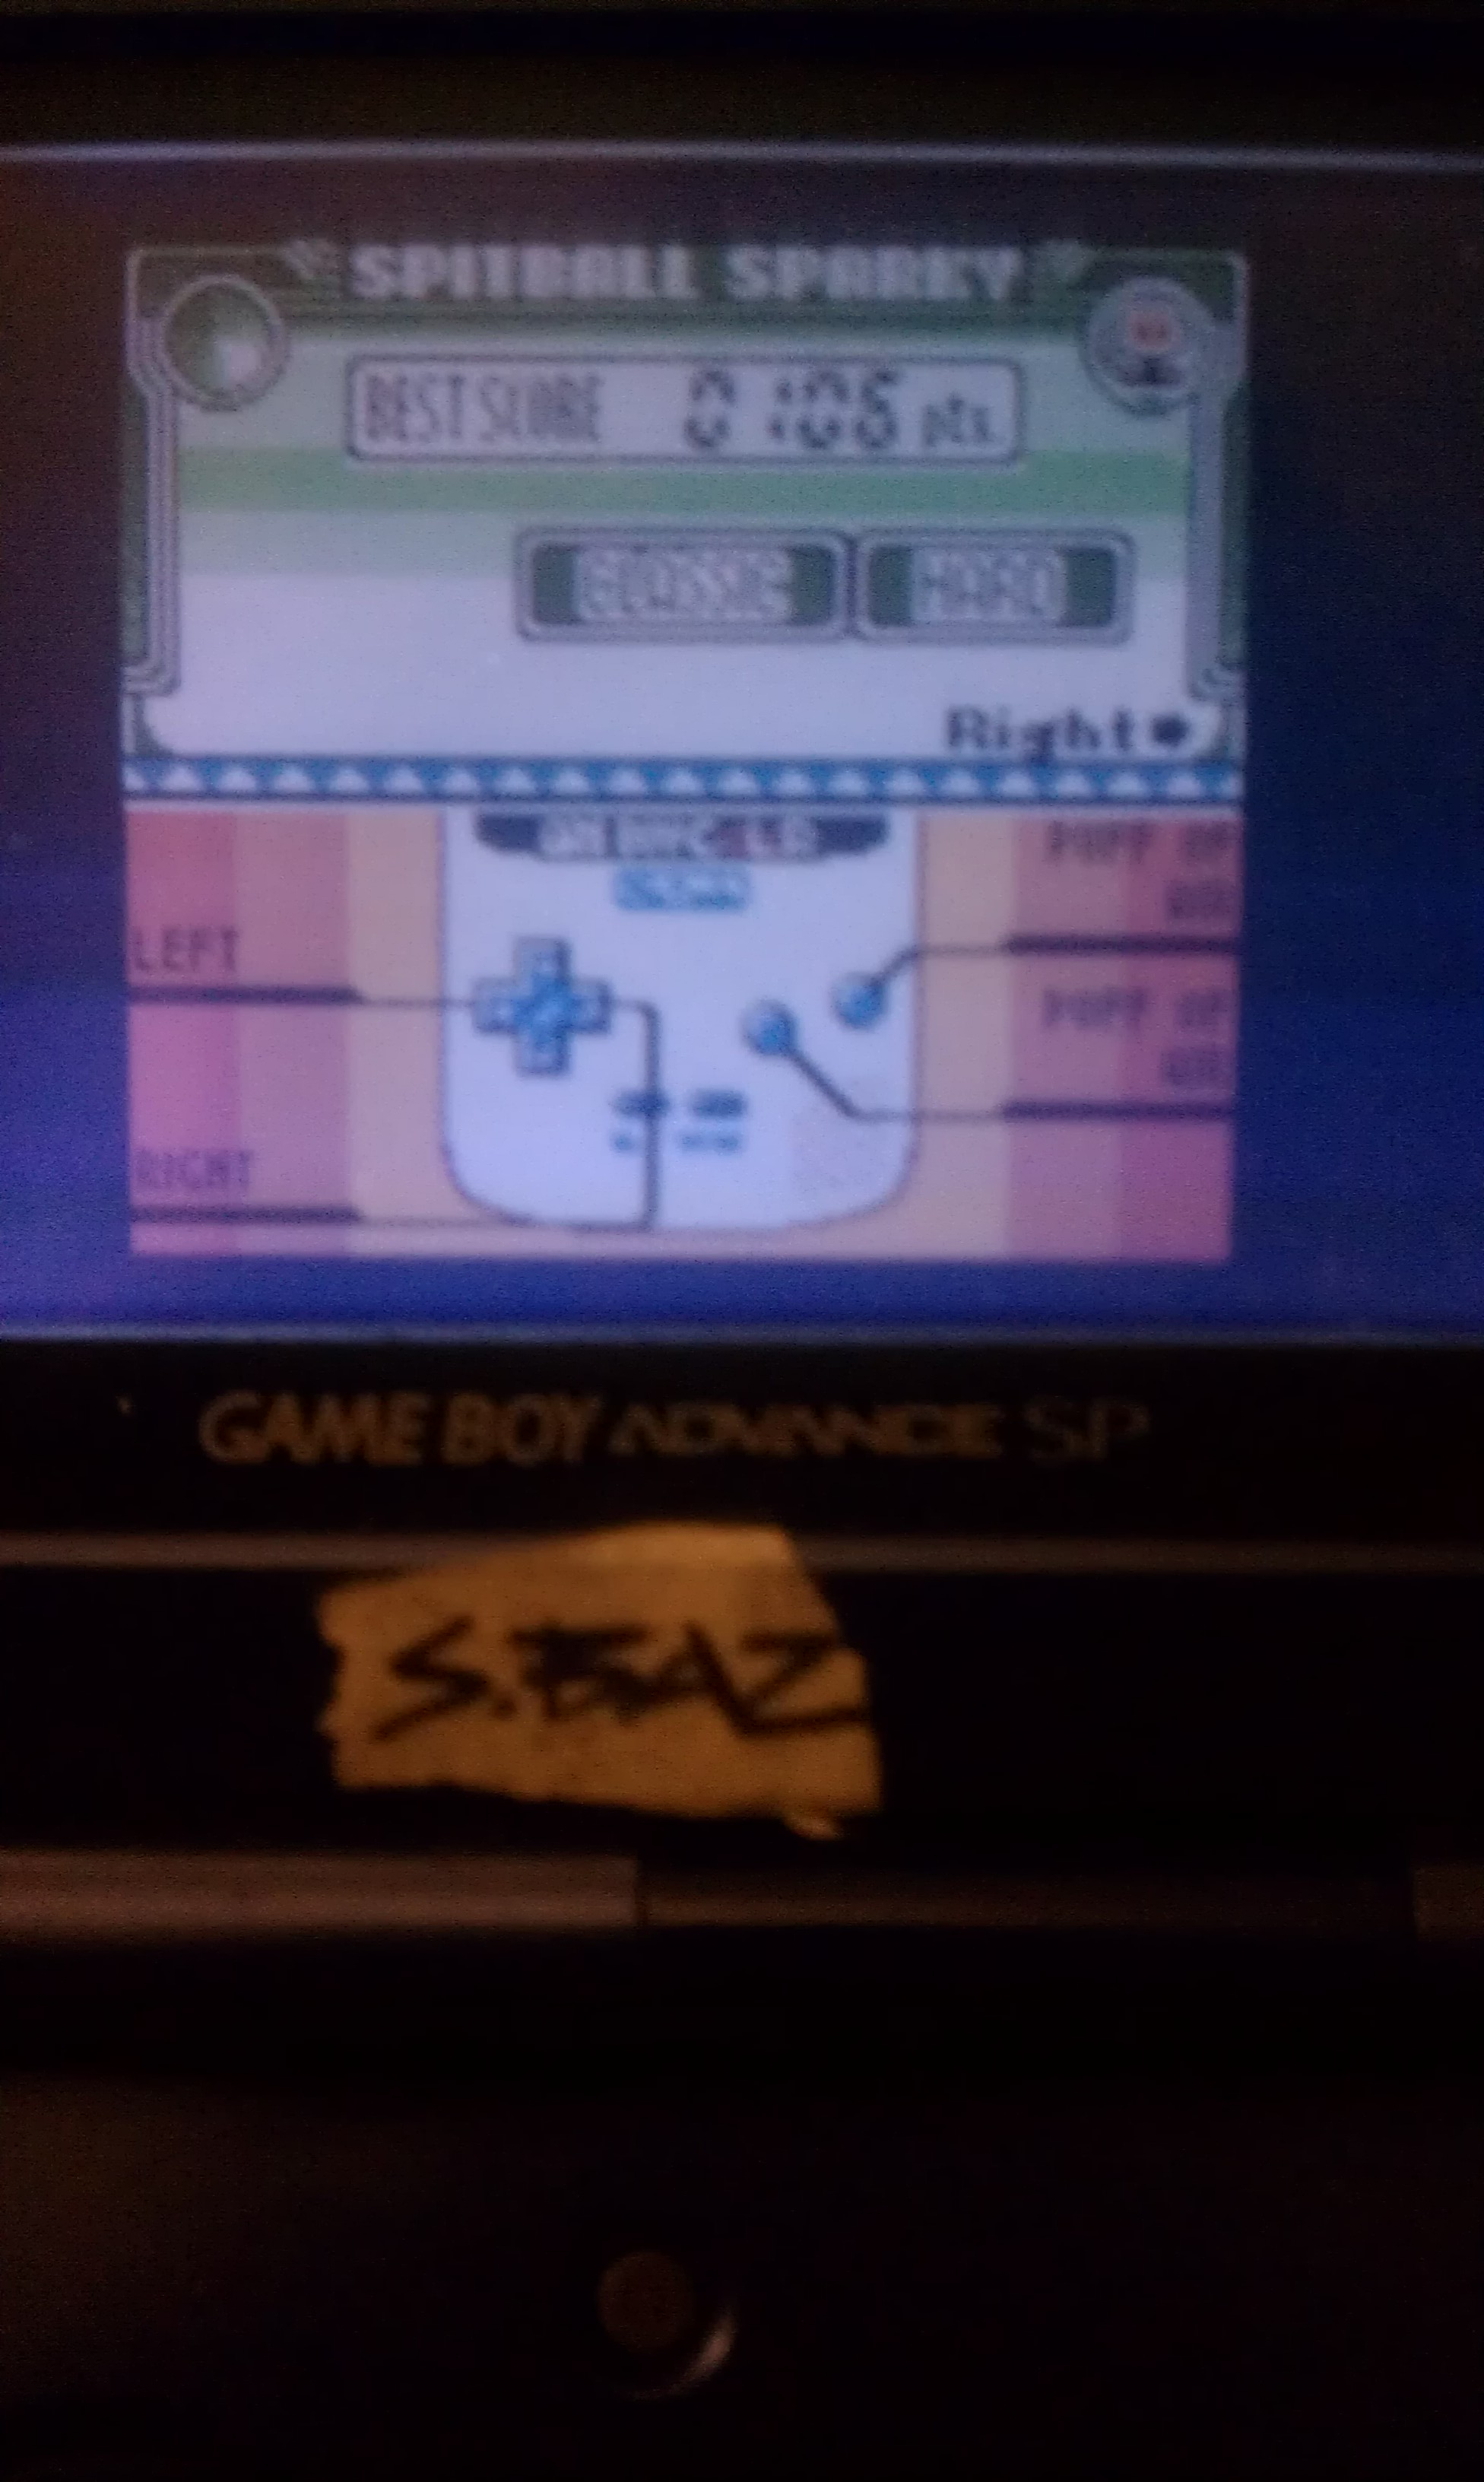 S.BAZ: Game & Watch Gallery 3: Spitball Sparky [Classic: Hard] (Game Boy Color) 106 points on 2018-08-24 14:55:07